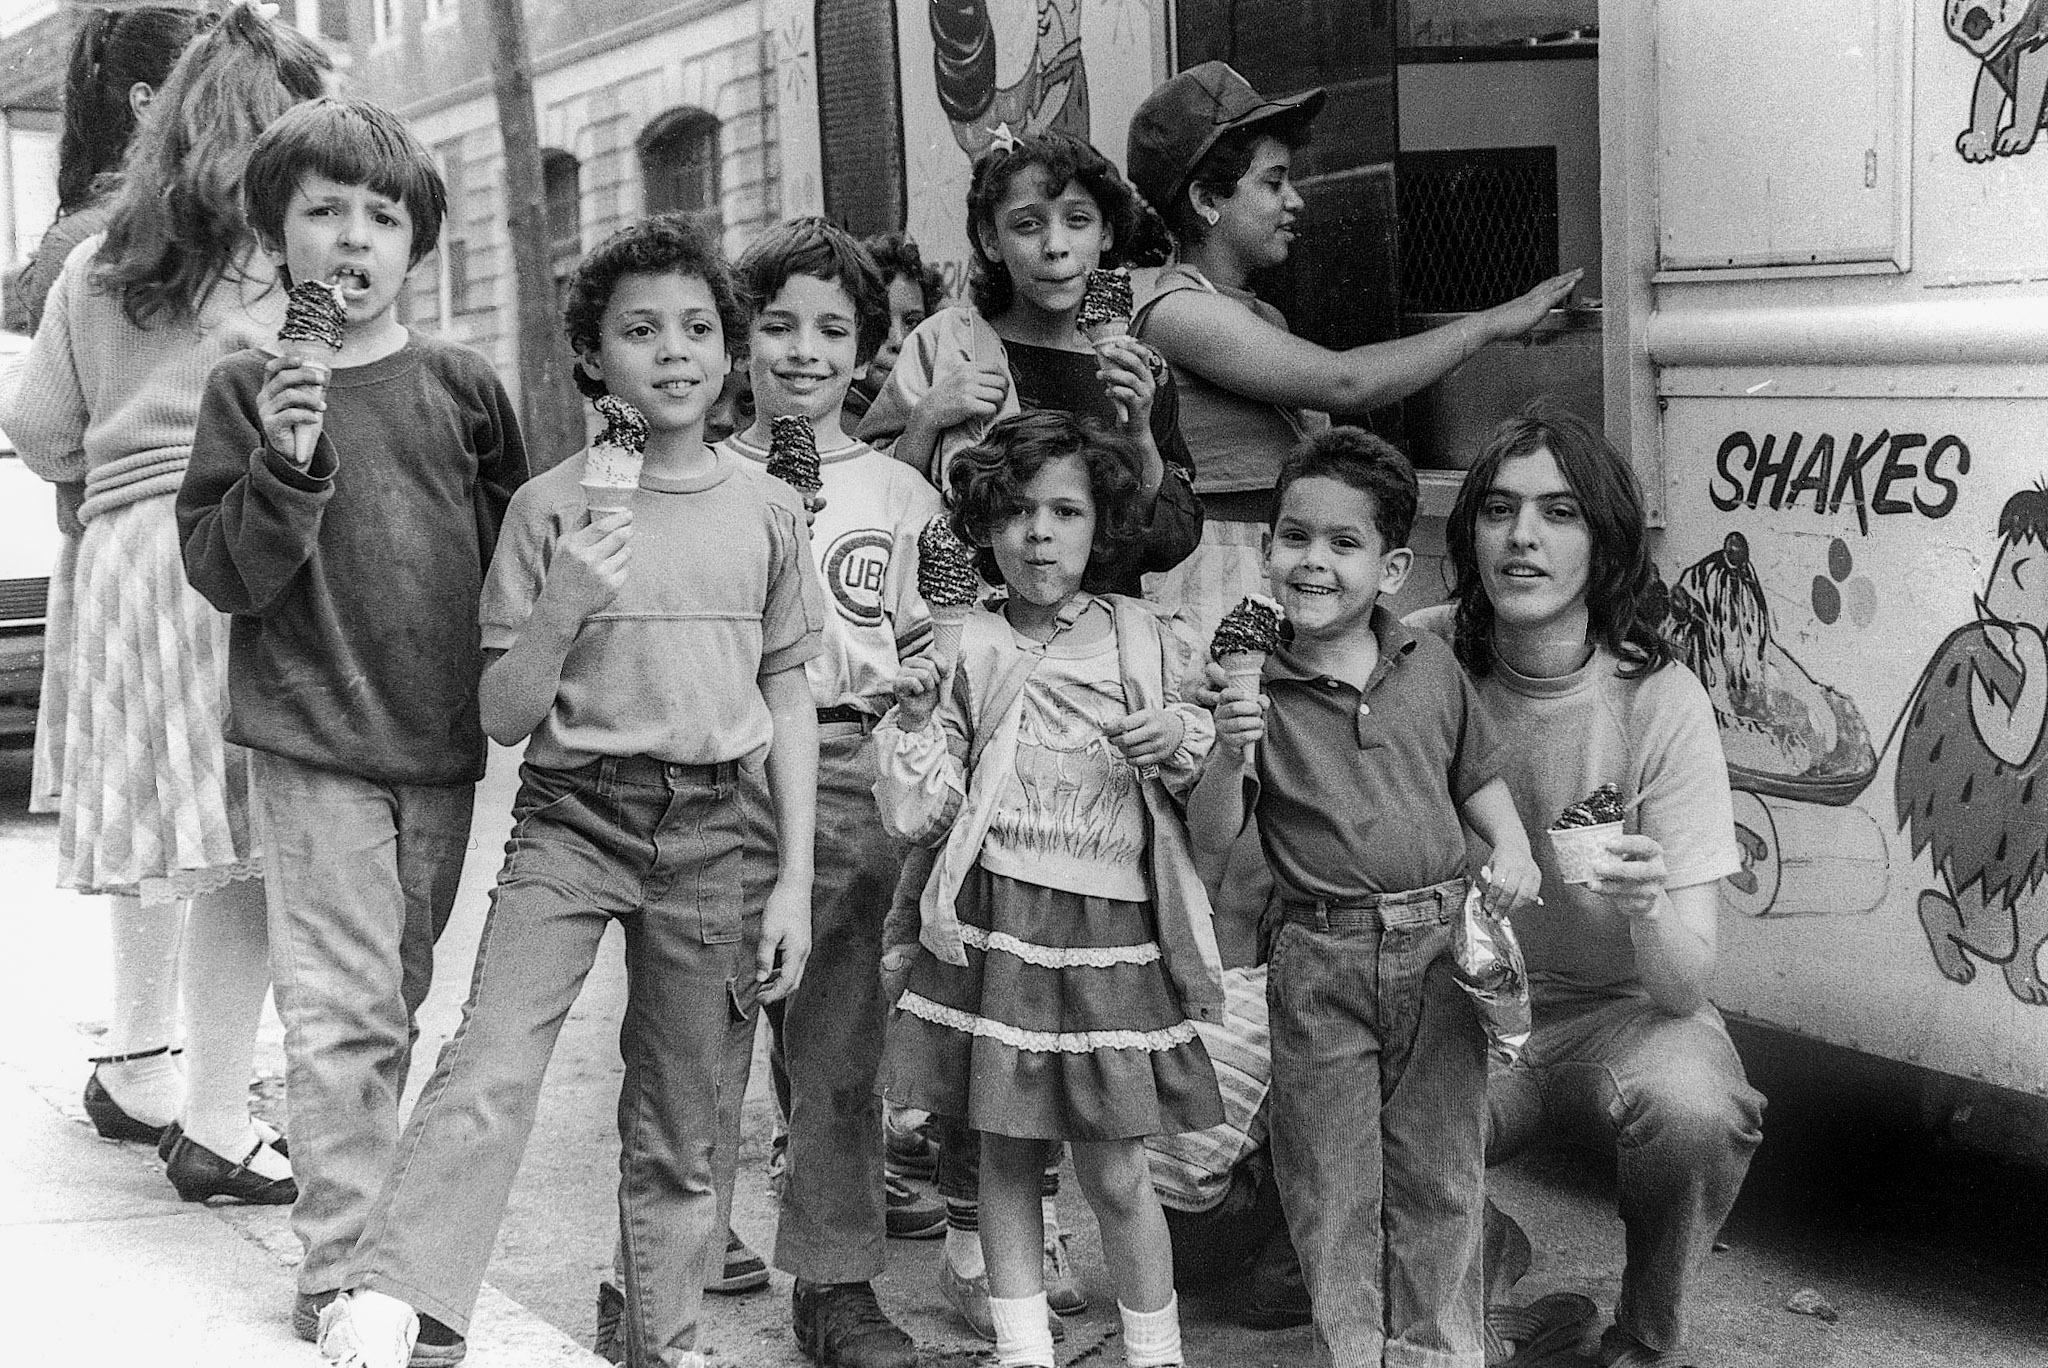 By the 1970s, Puerto Rican and Latino newcomers were becoming a visible part of Chelsea life. Photo by Arnie Jarmak.